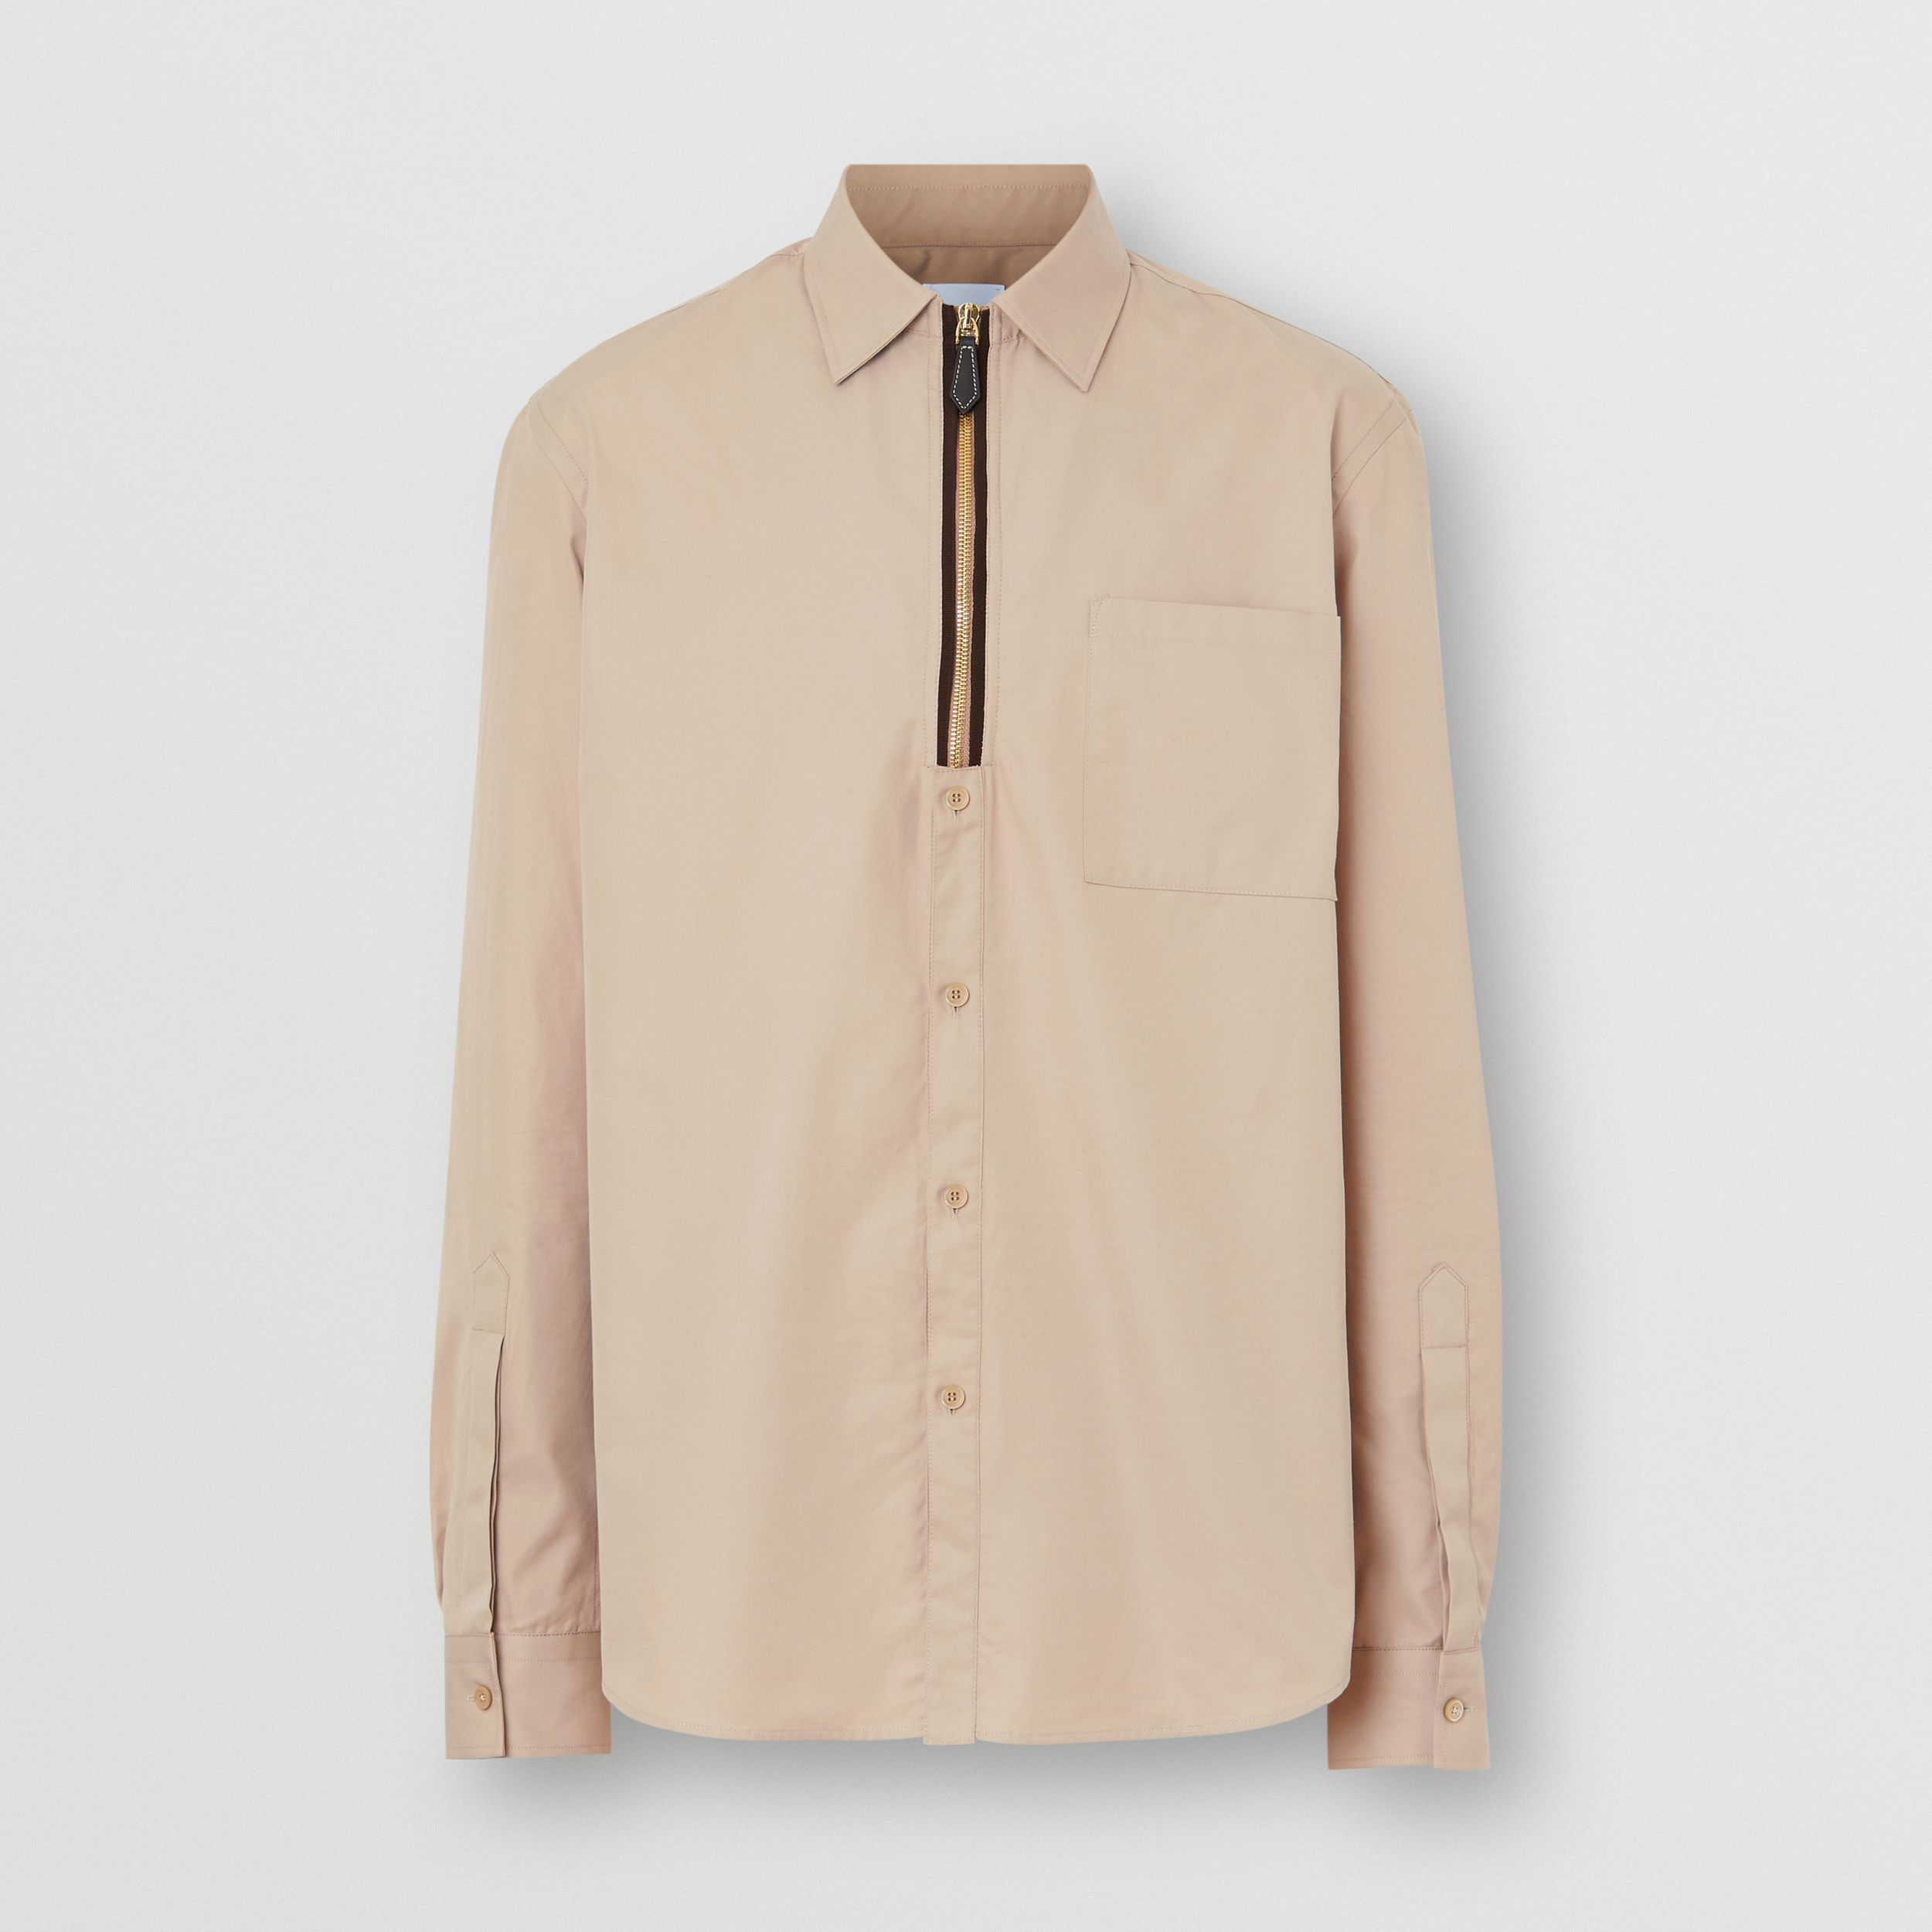 Classic Fit Zip Detail Cotton Twill Shirt in Soft Fawn - Men | Burberry - 4